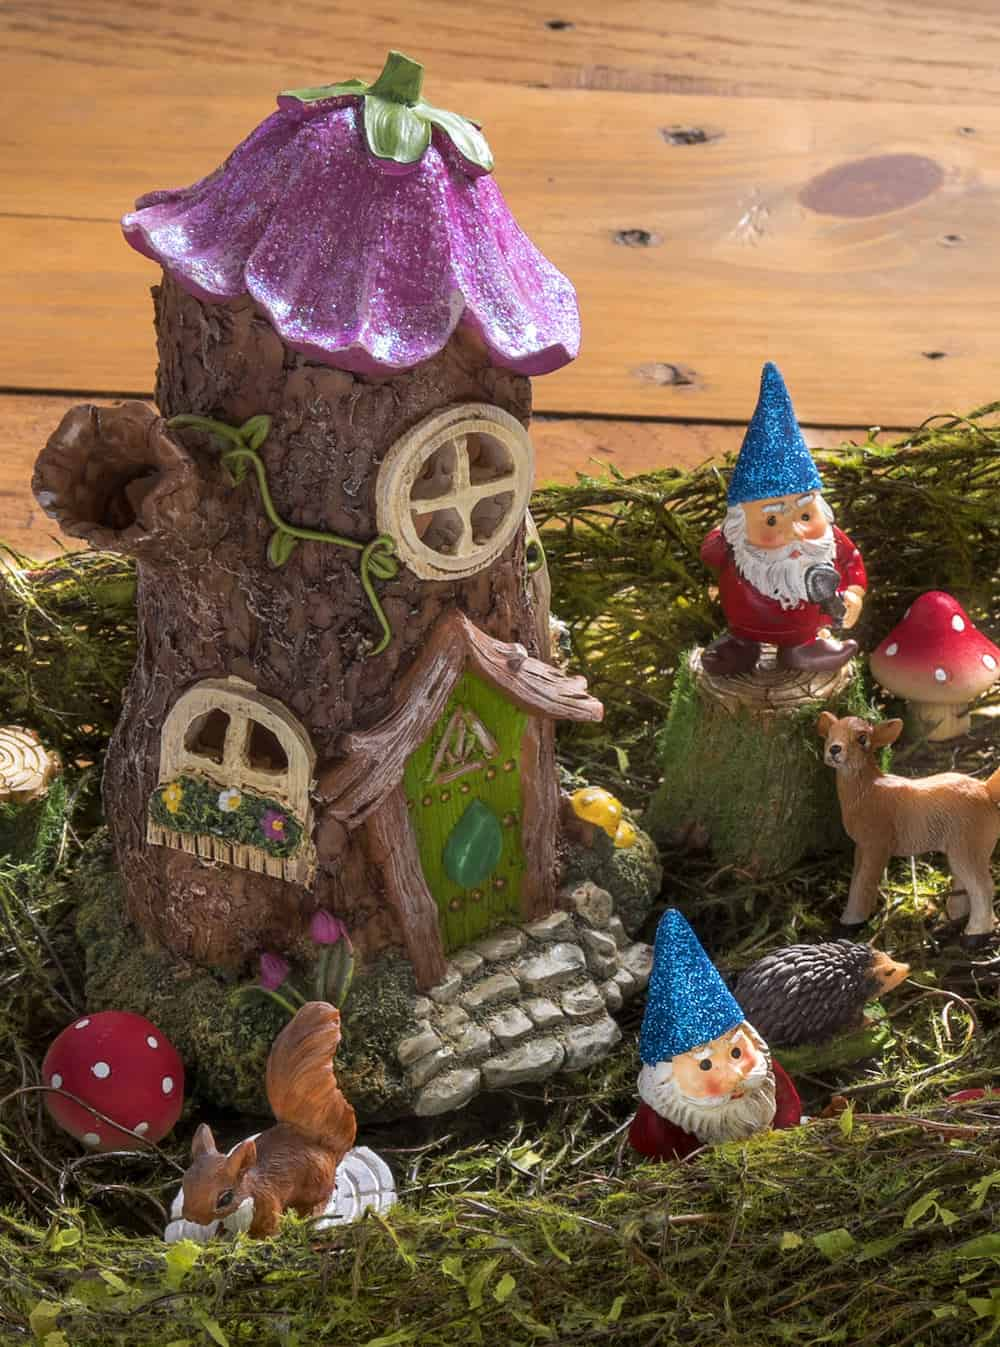 Michaels Fairy Garden Kit - Year of Clean Water